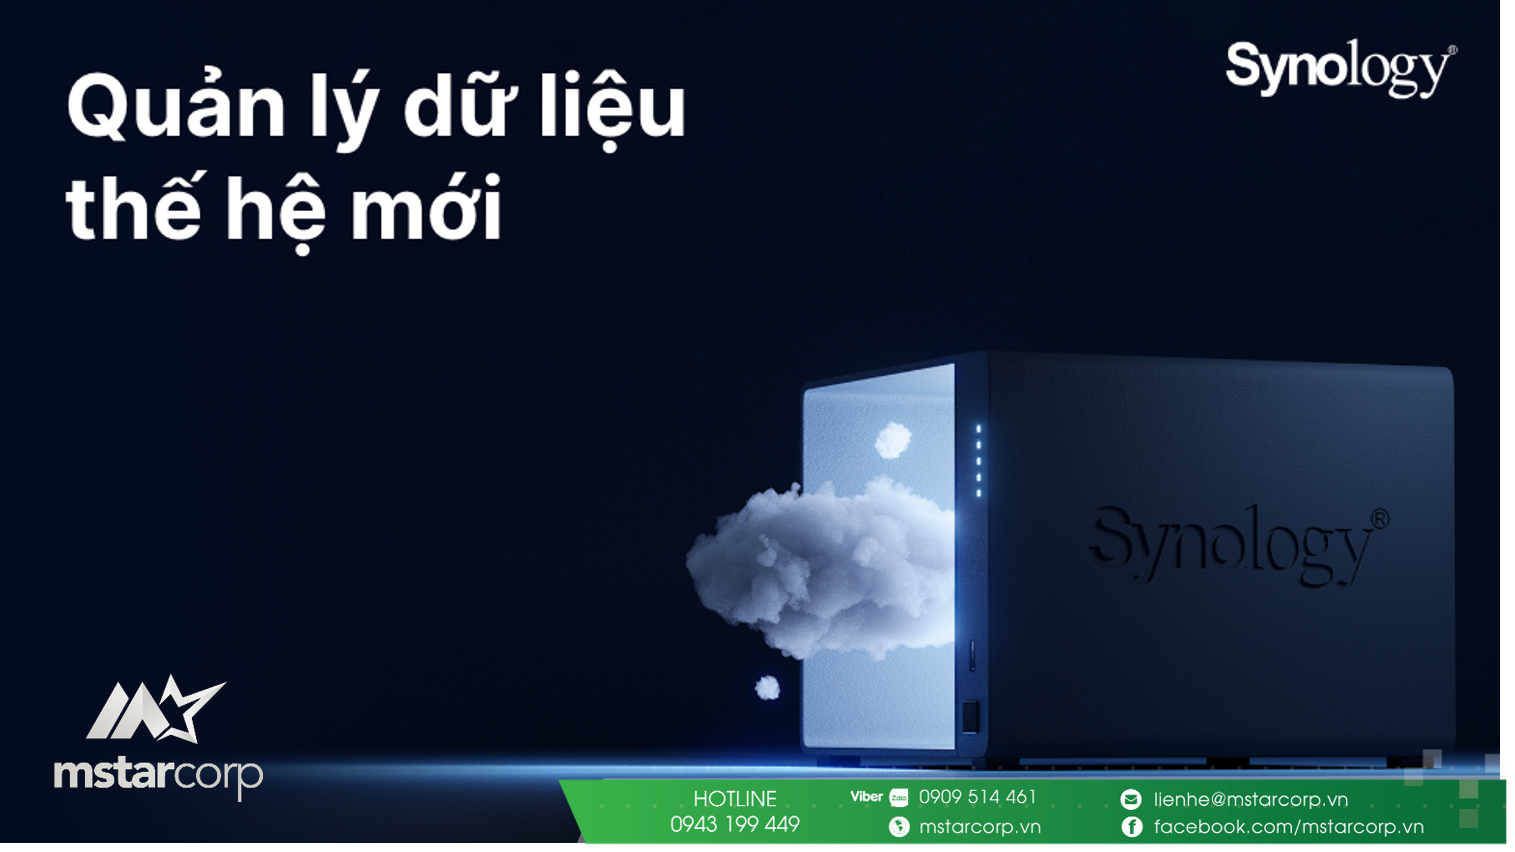 nen tang dam may voi synology c2